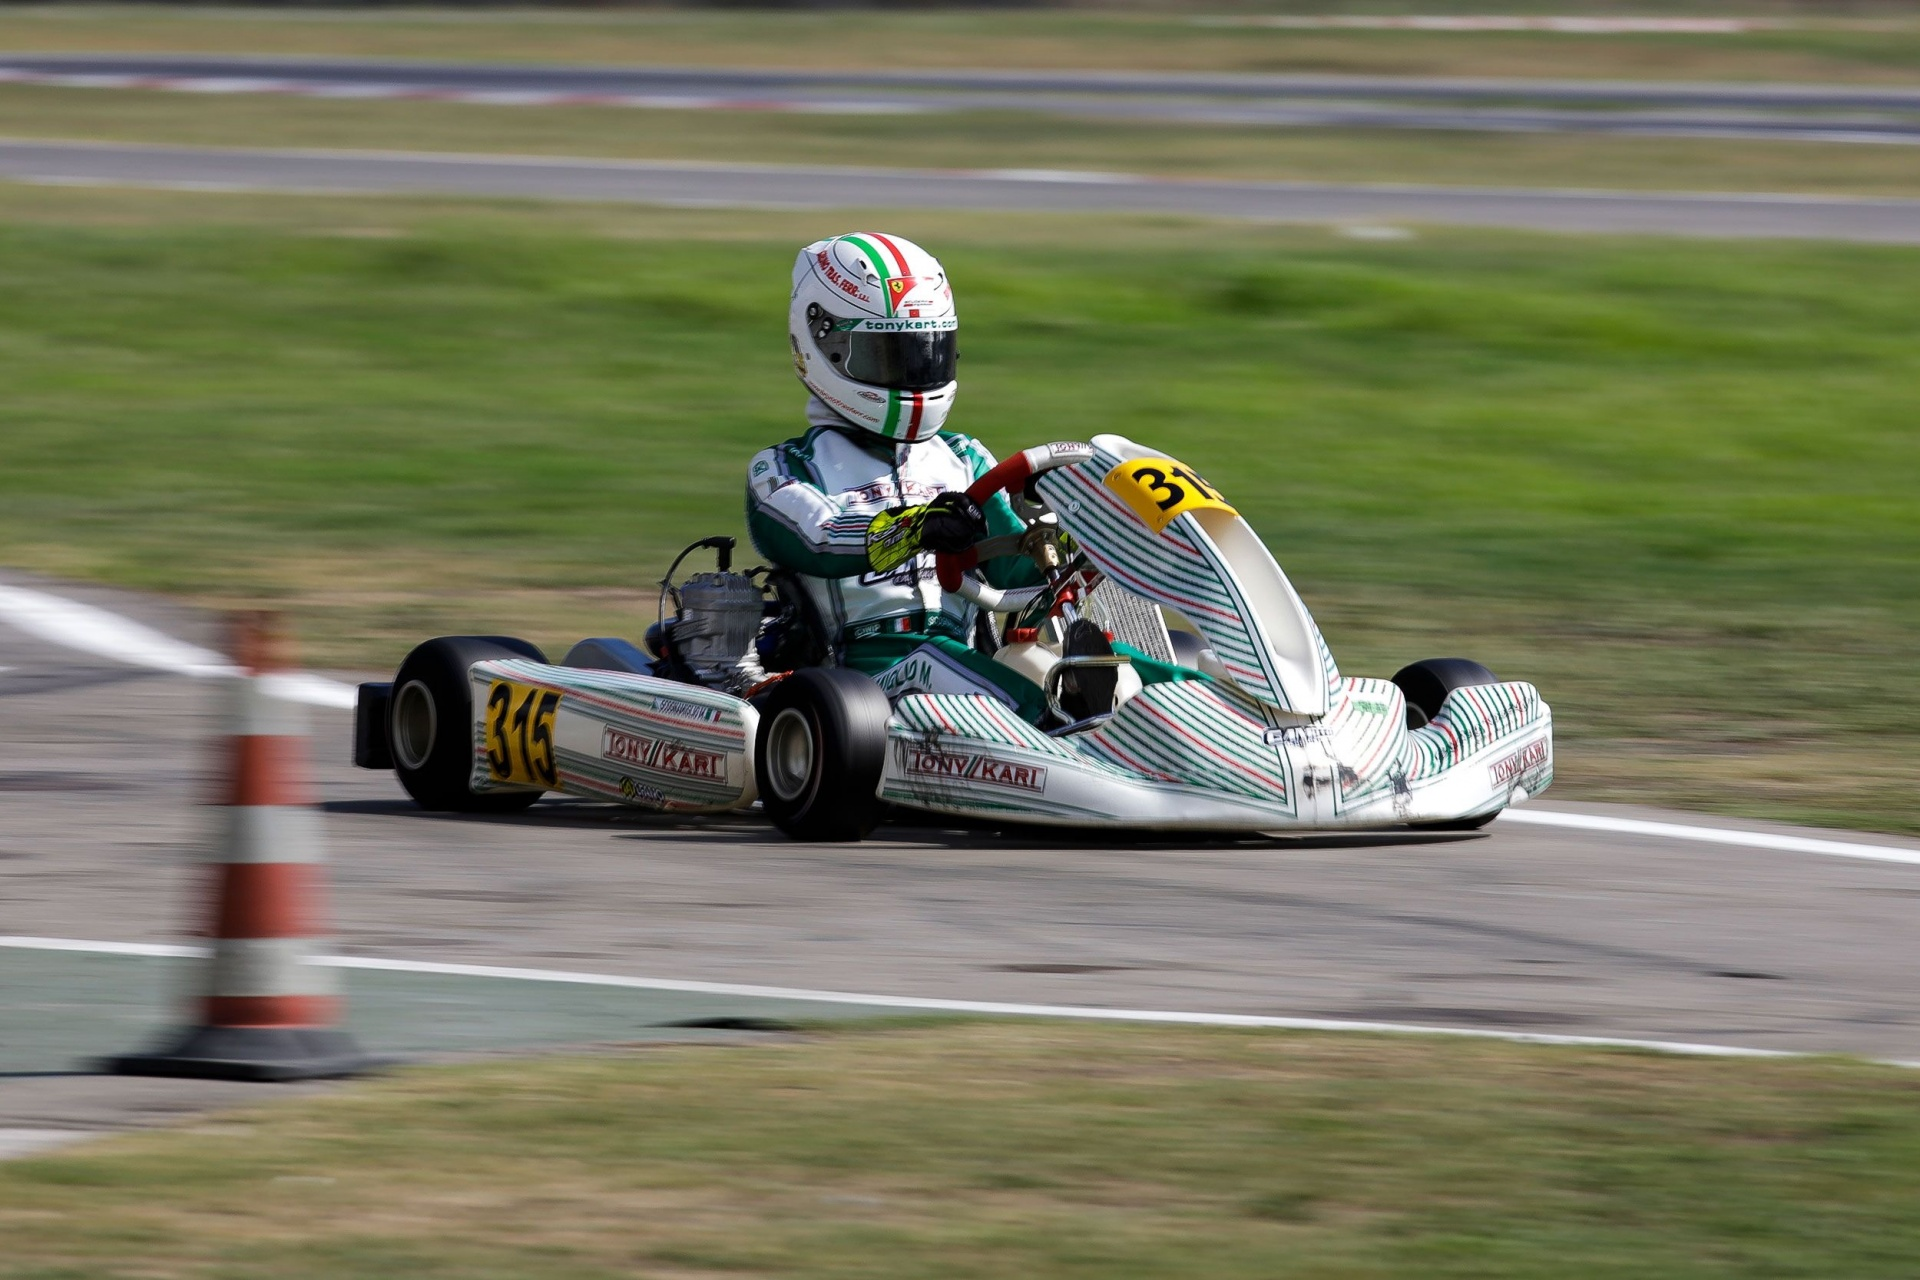 Gamoto vince ancora in X30 nell'ACI Karting